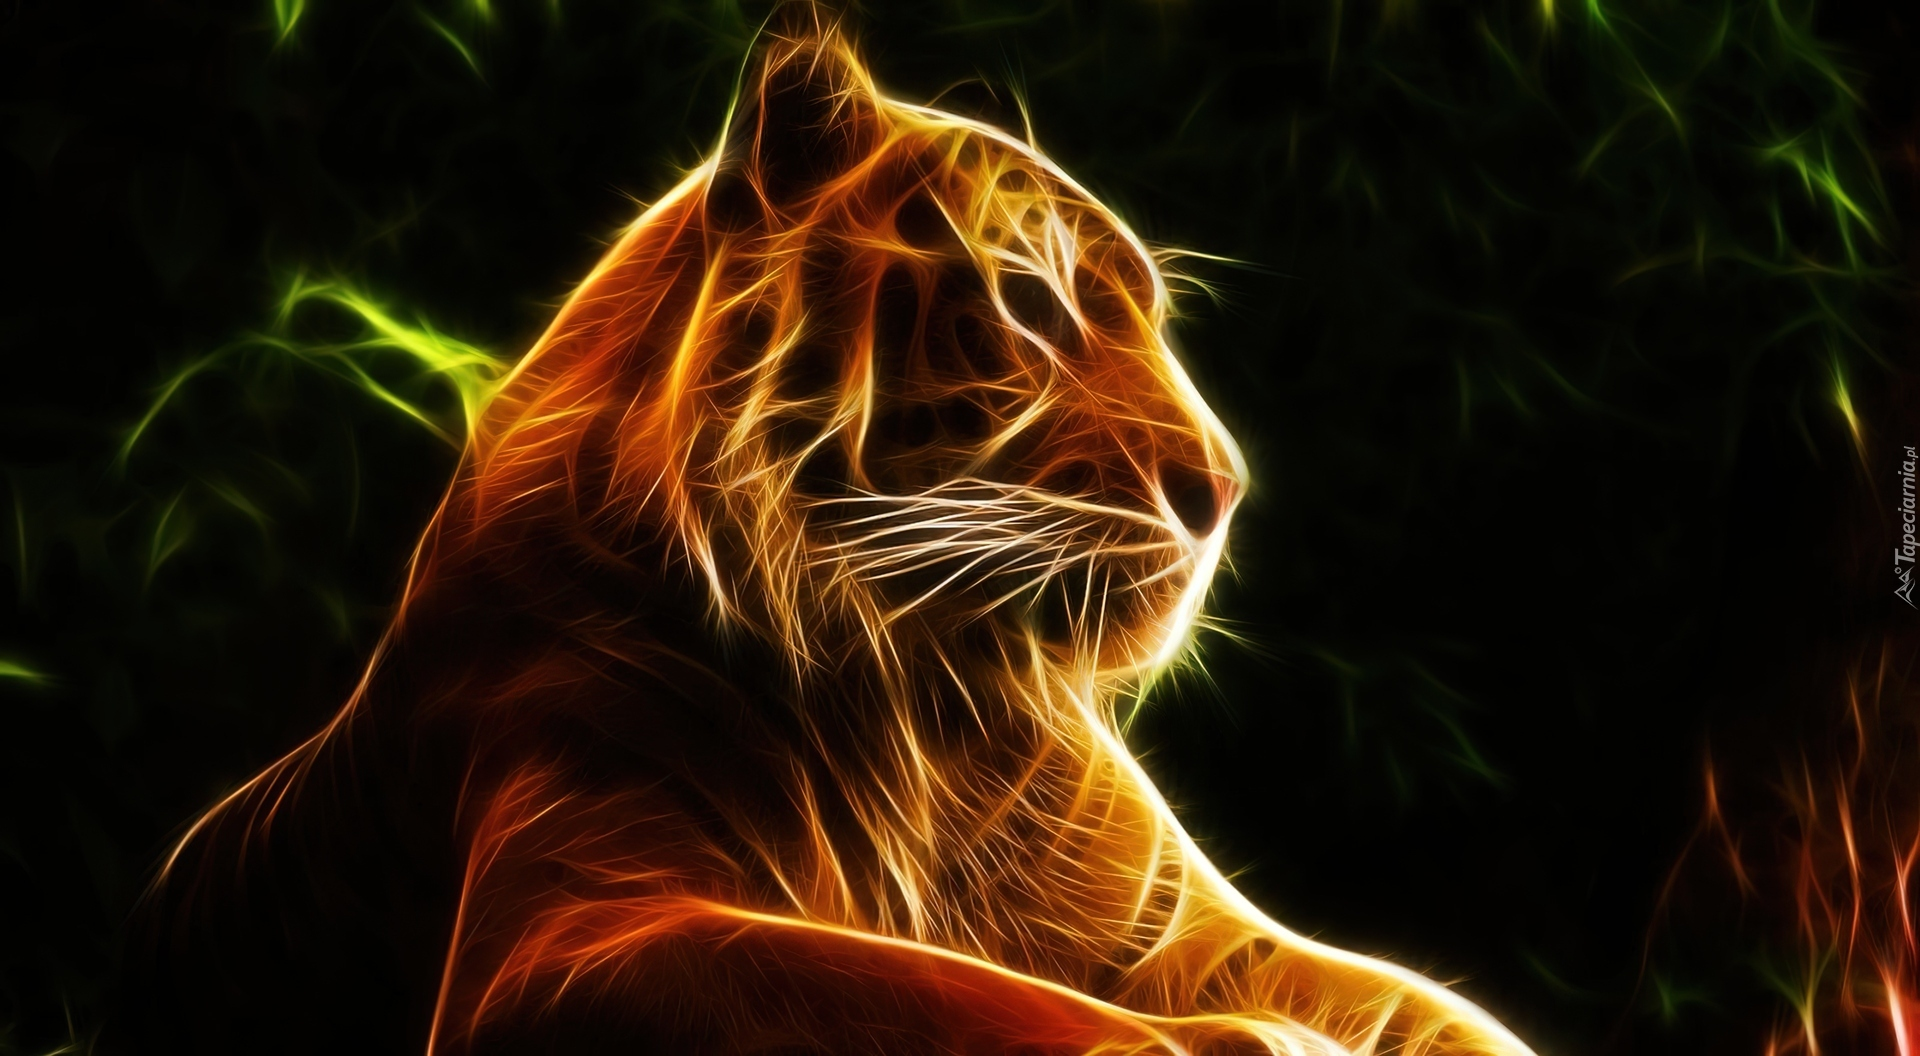 Animals Happy Lion Wallpapers Hd Desktop And Mobile: Tygrys, Grafika, Fractalius